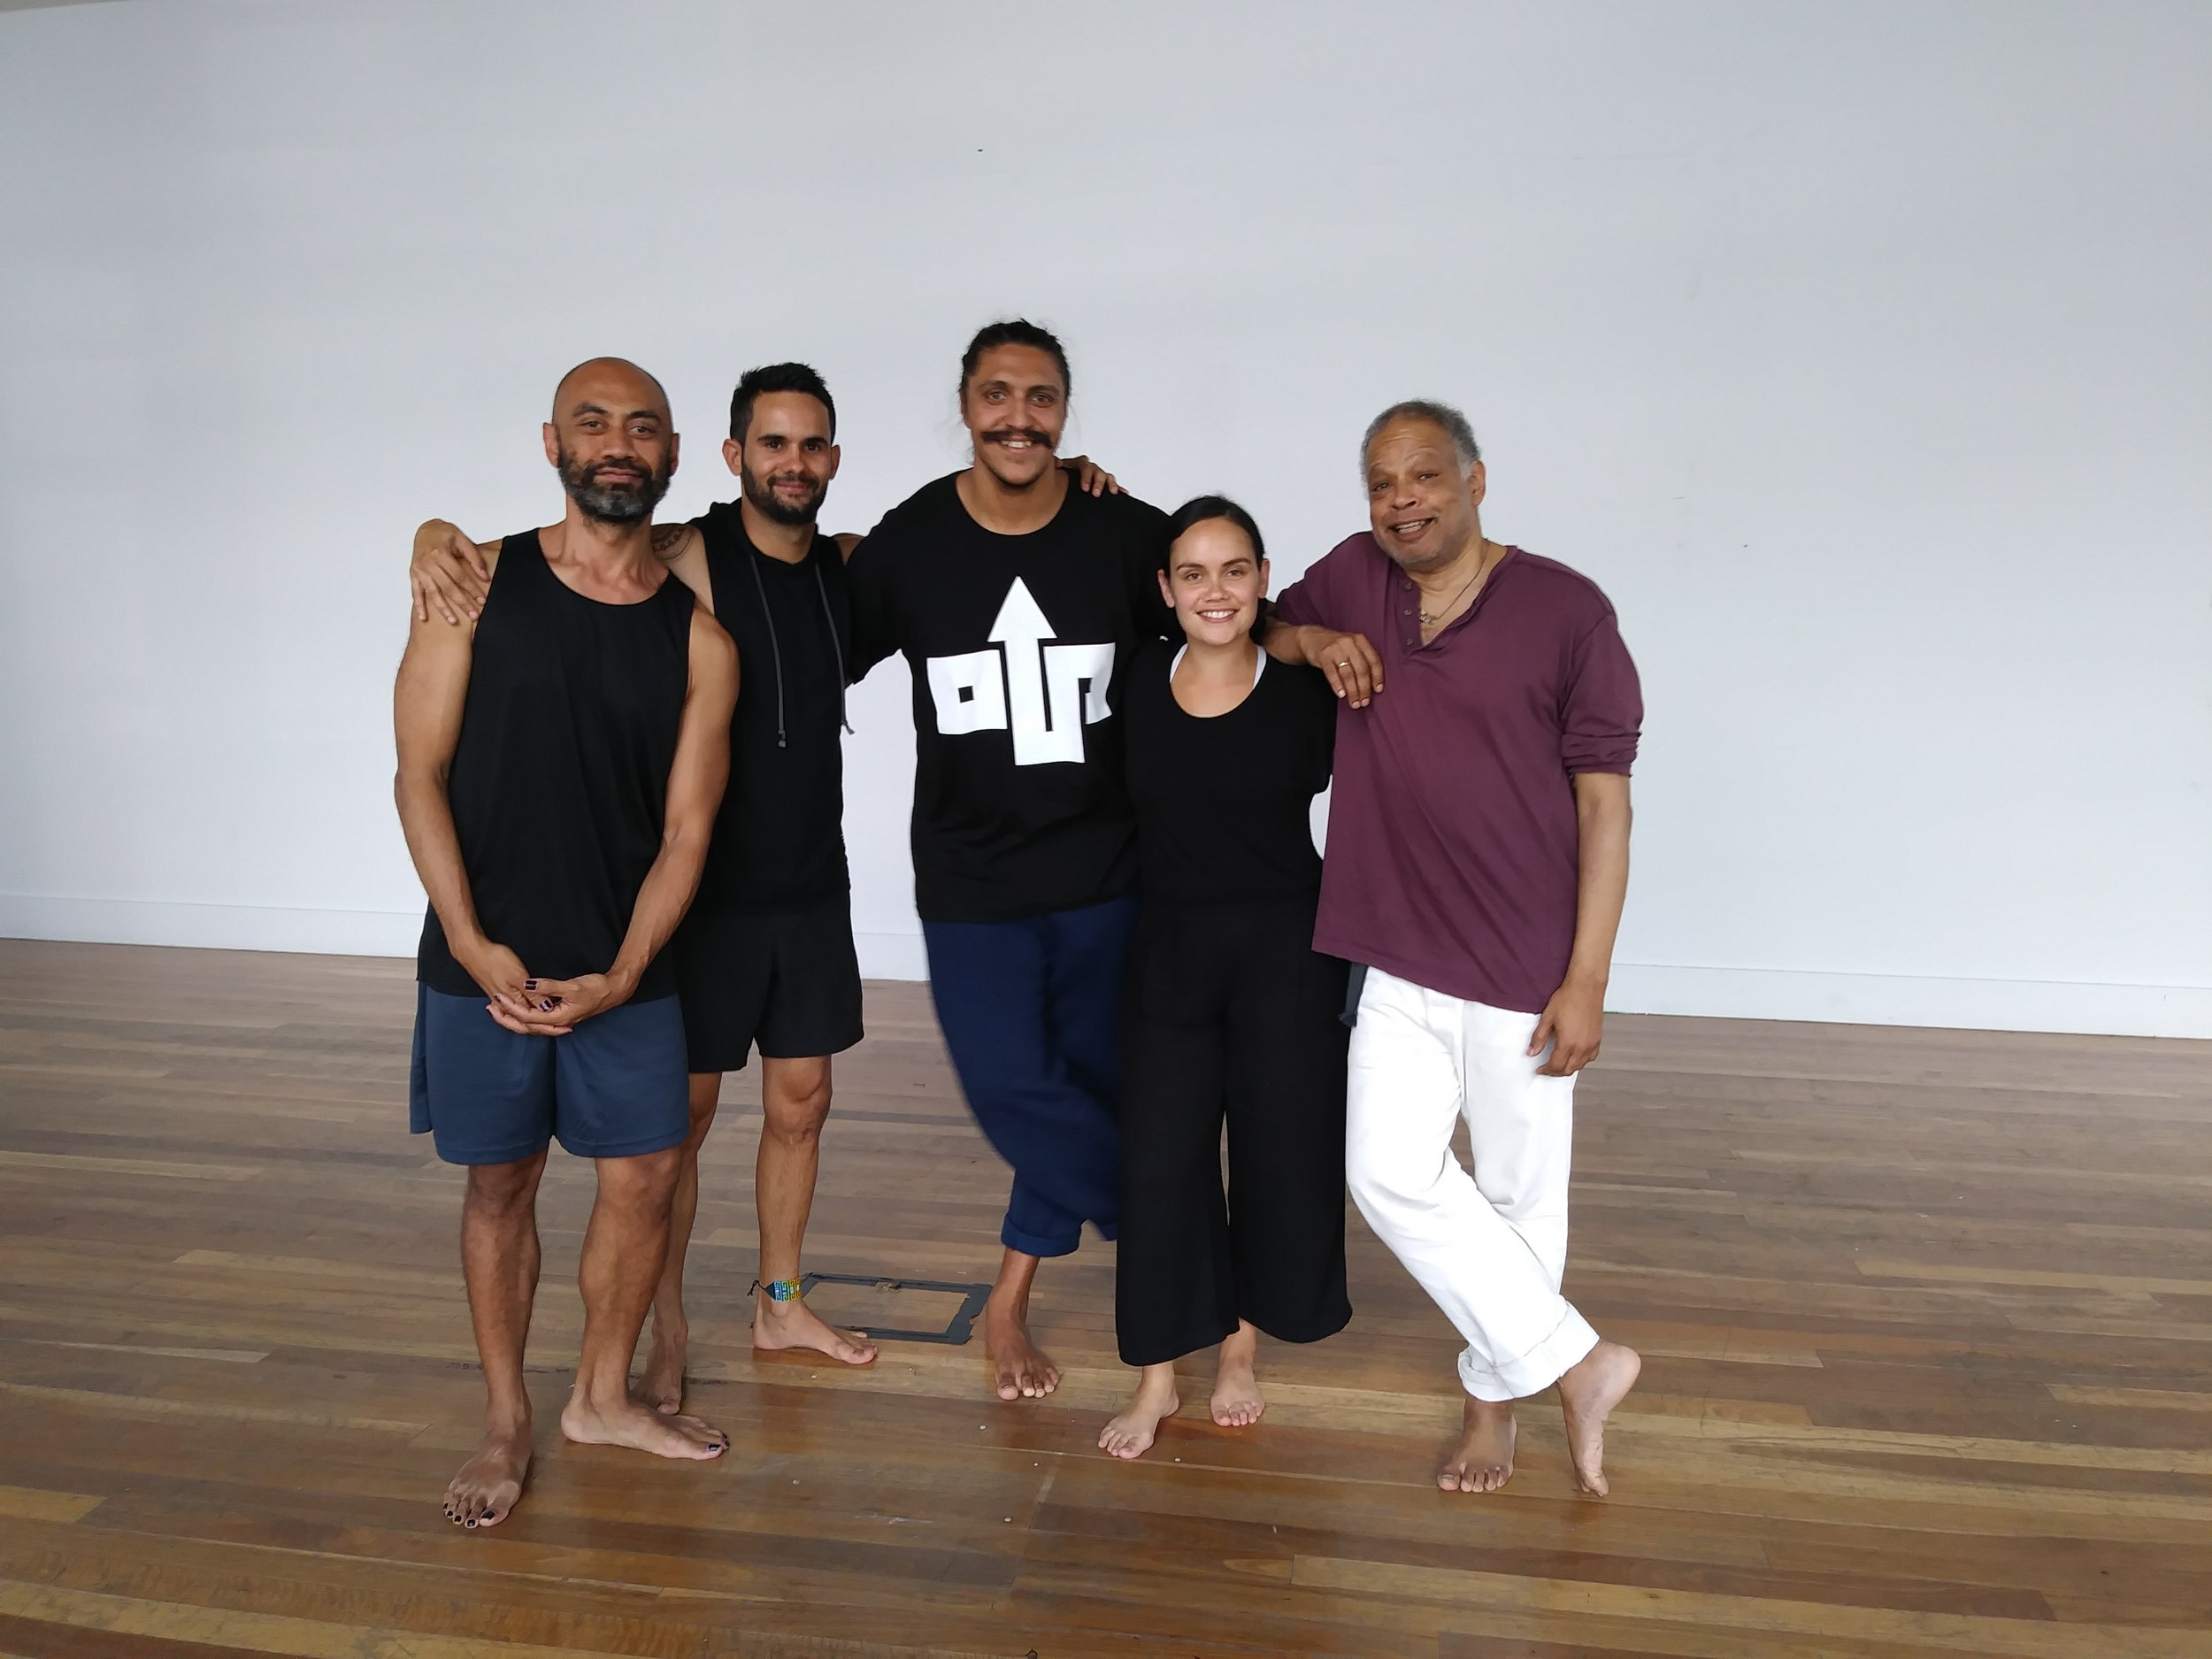 dancer/choreographer/performance makers of indigenous and First Nations heritage  ,  Ishmael Houston-Jones led workshop in Sydney, Australia   Pictured: Brian Fuata, Glen Thomas, Thomas E S Kelly, Taree Sansbury, 2017    photographer unknown